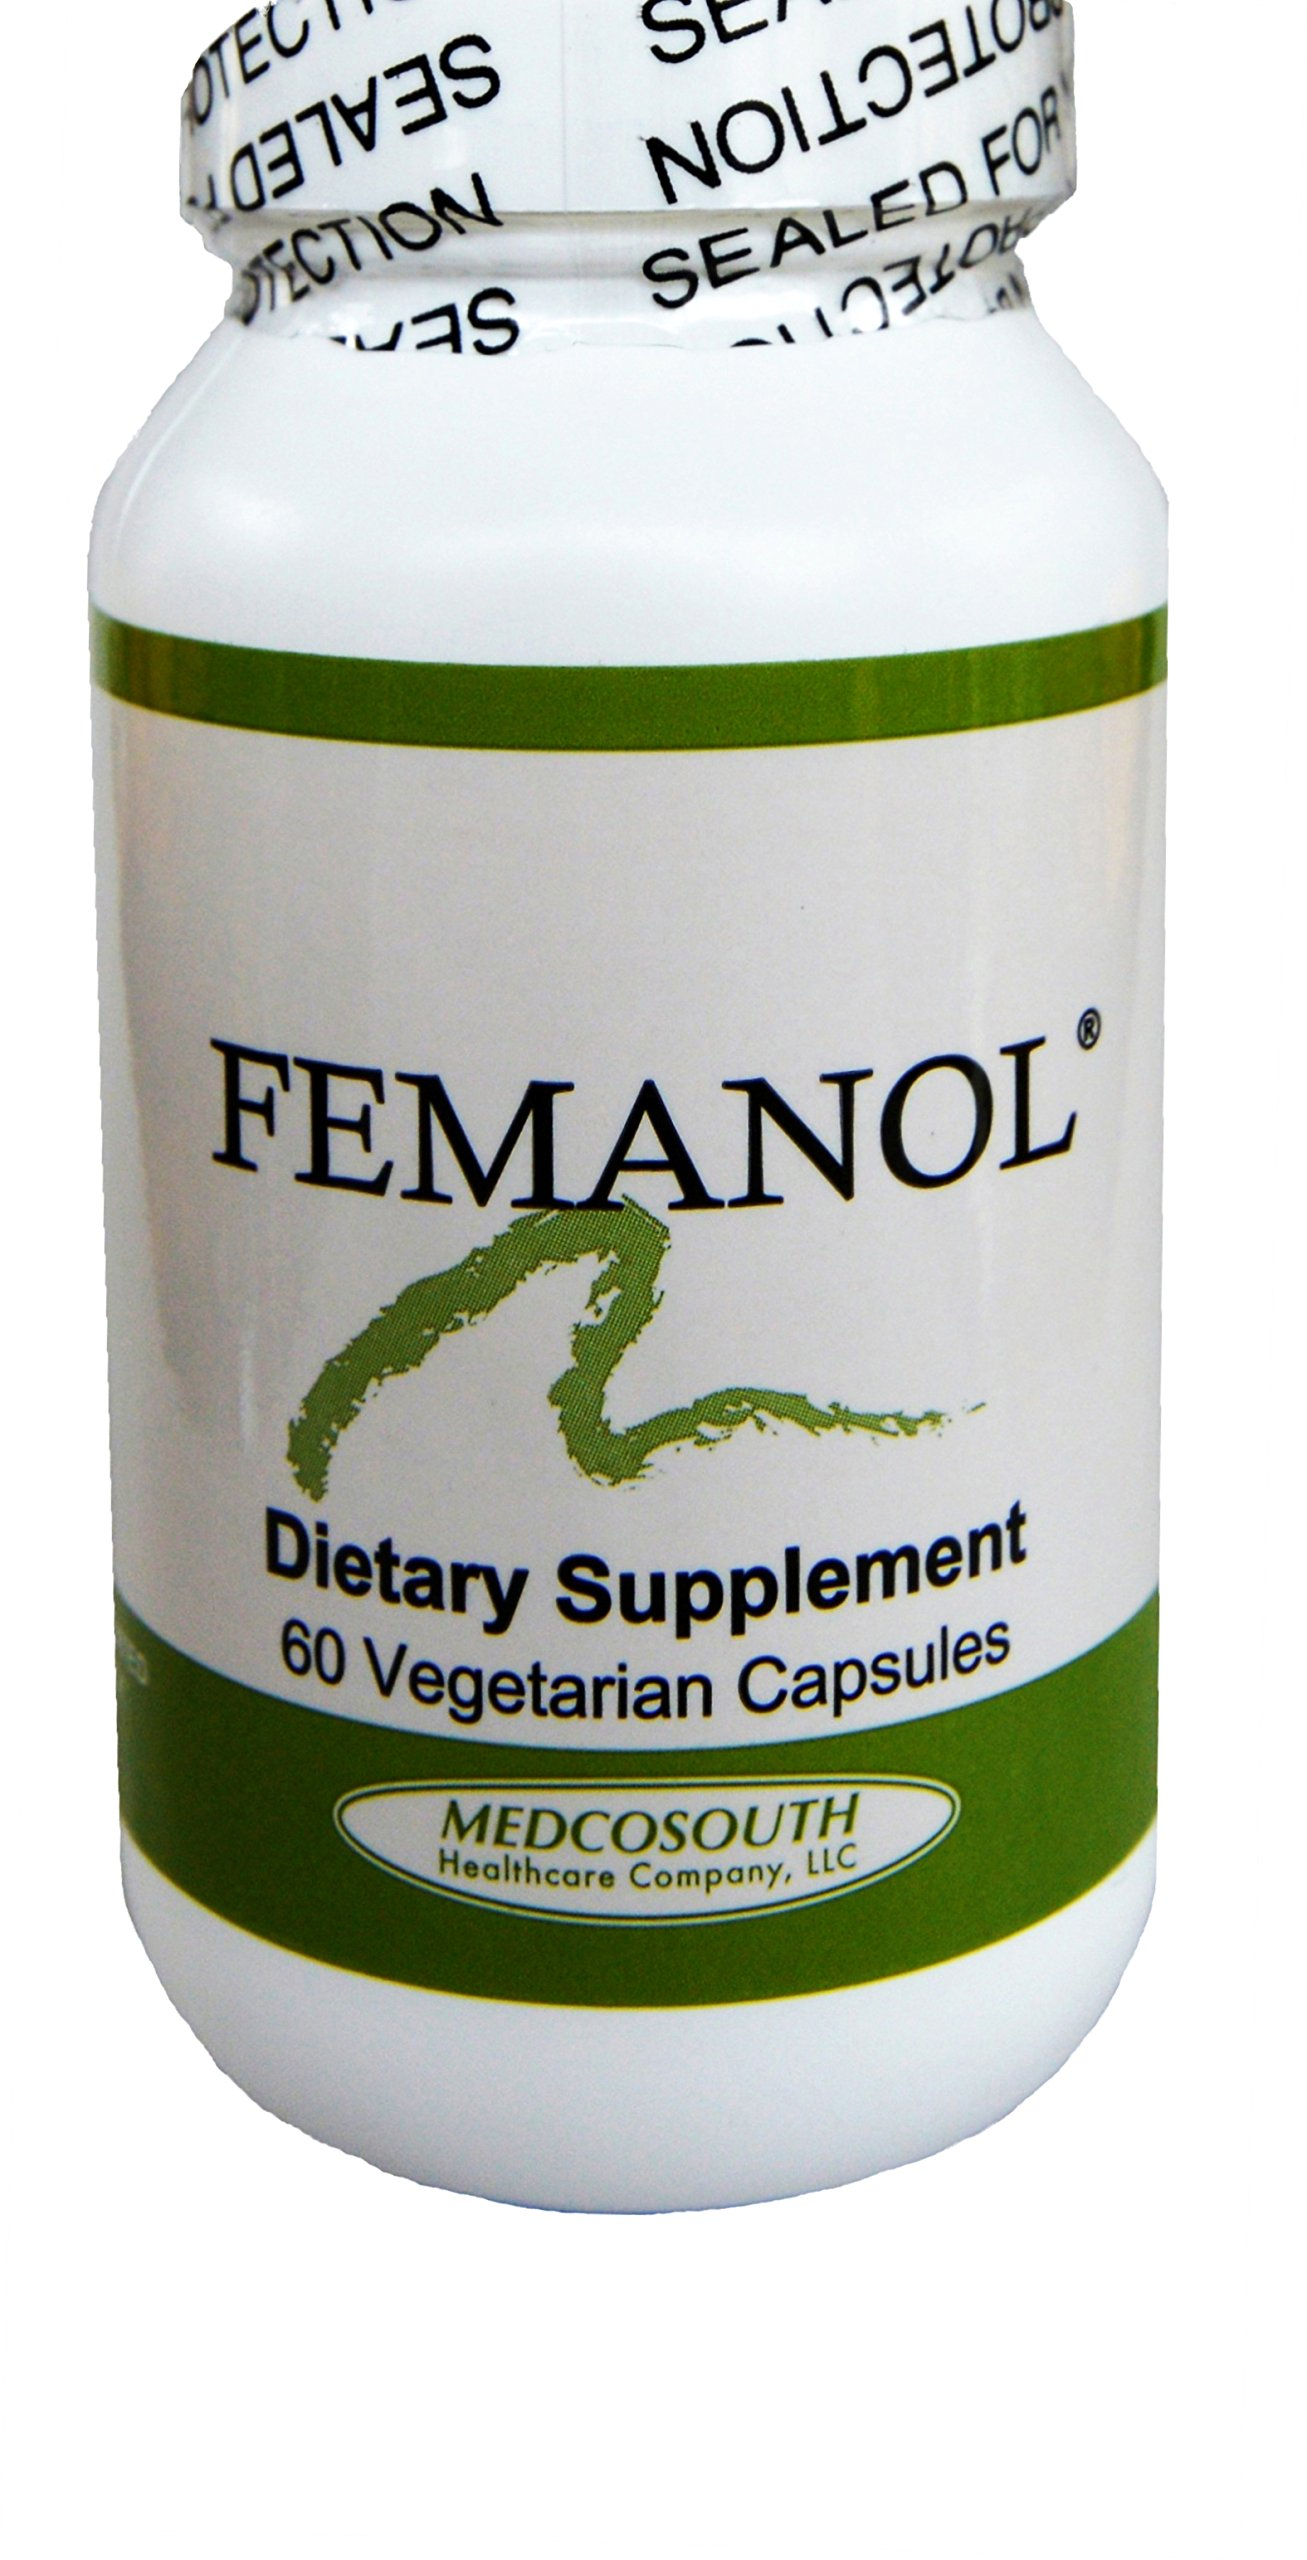 Femanol (1) Bottle 60/count Supports Normal Healthy Feminine and Vaginal Odor by MedcoSouth